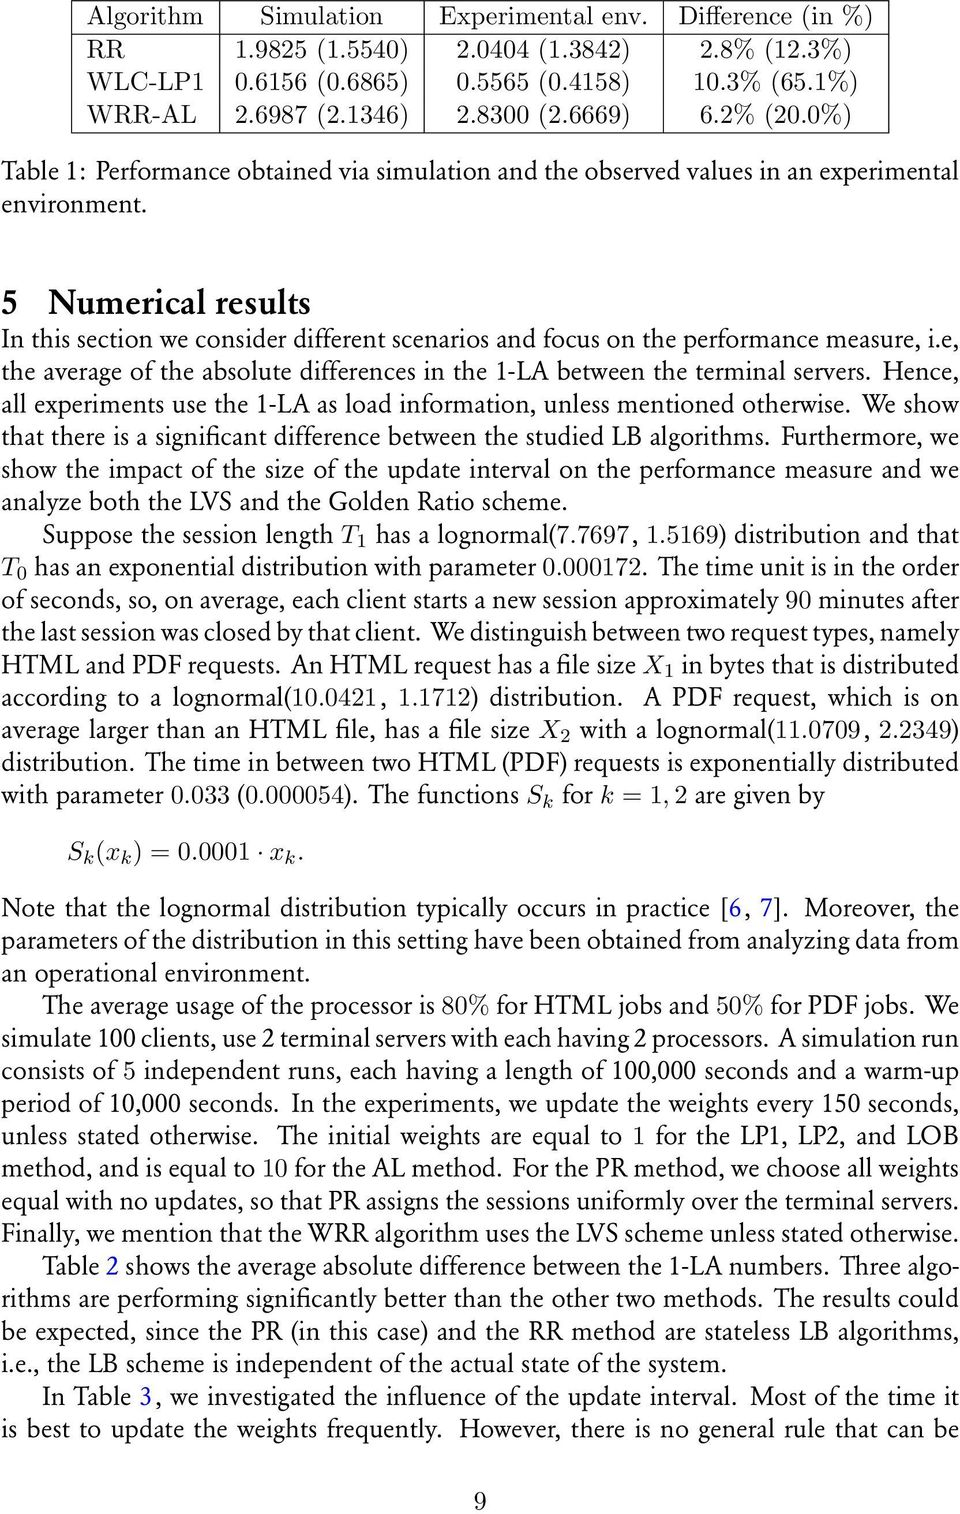 5 Numerical results In this section we consider different scenarios and focus on the performance measure, i.e, the average of the absolute differences in the 1-LA between the terminal servers.